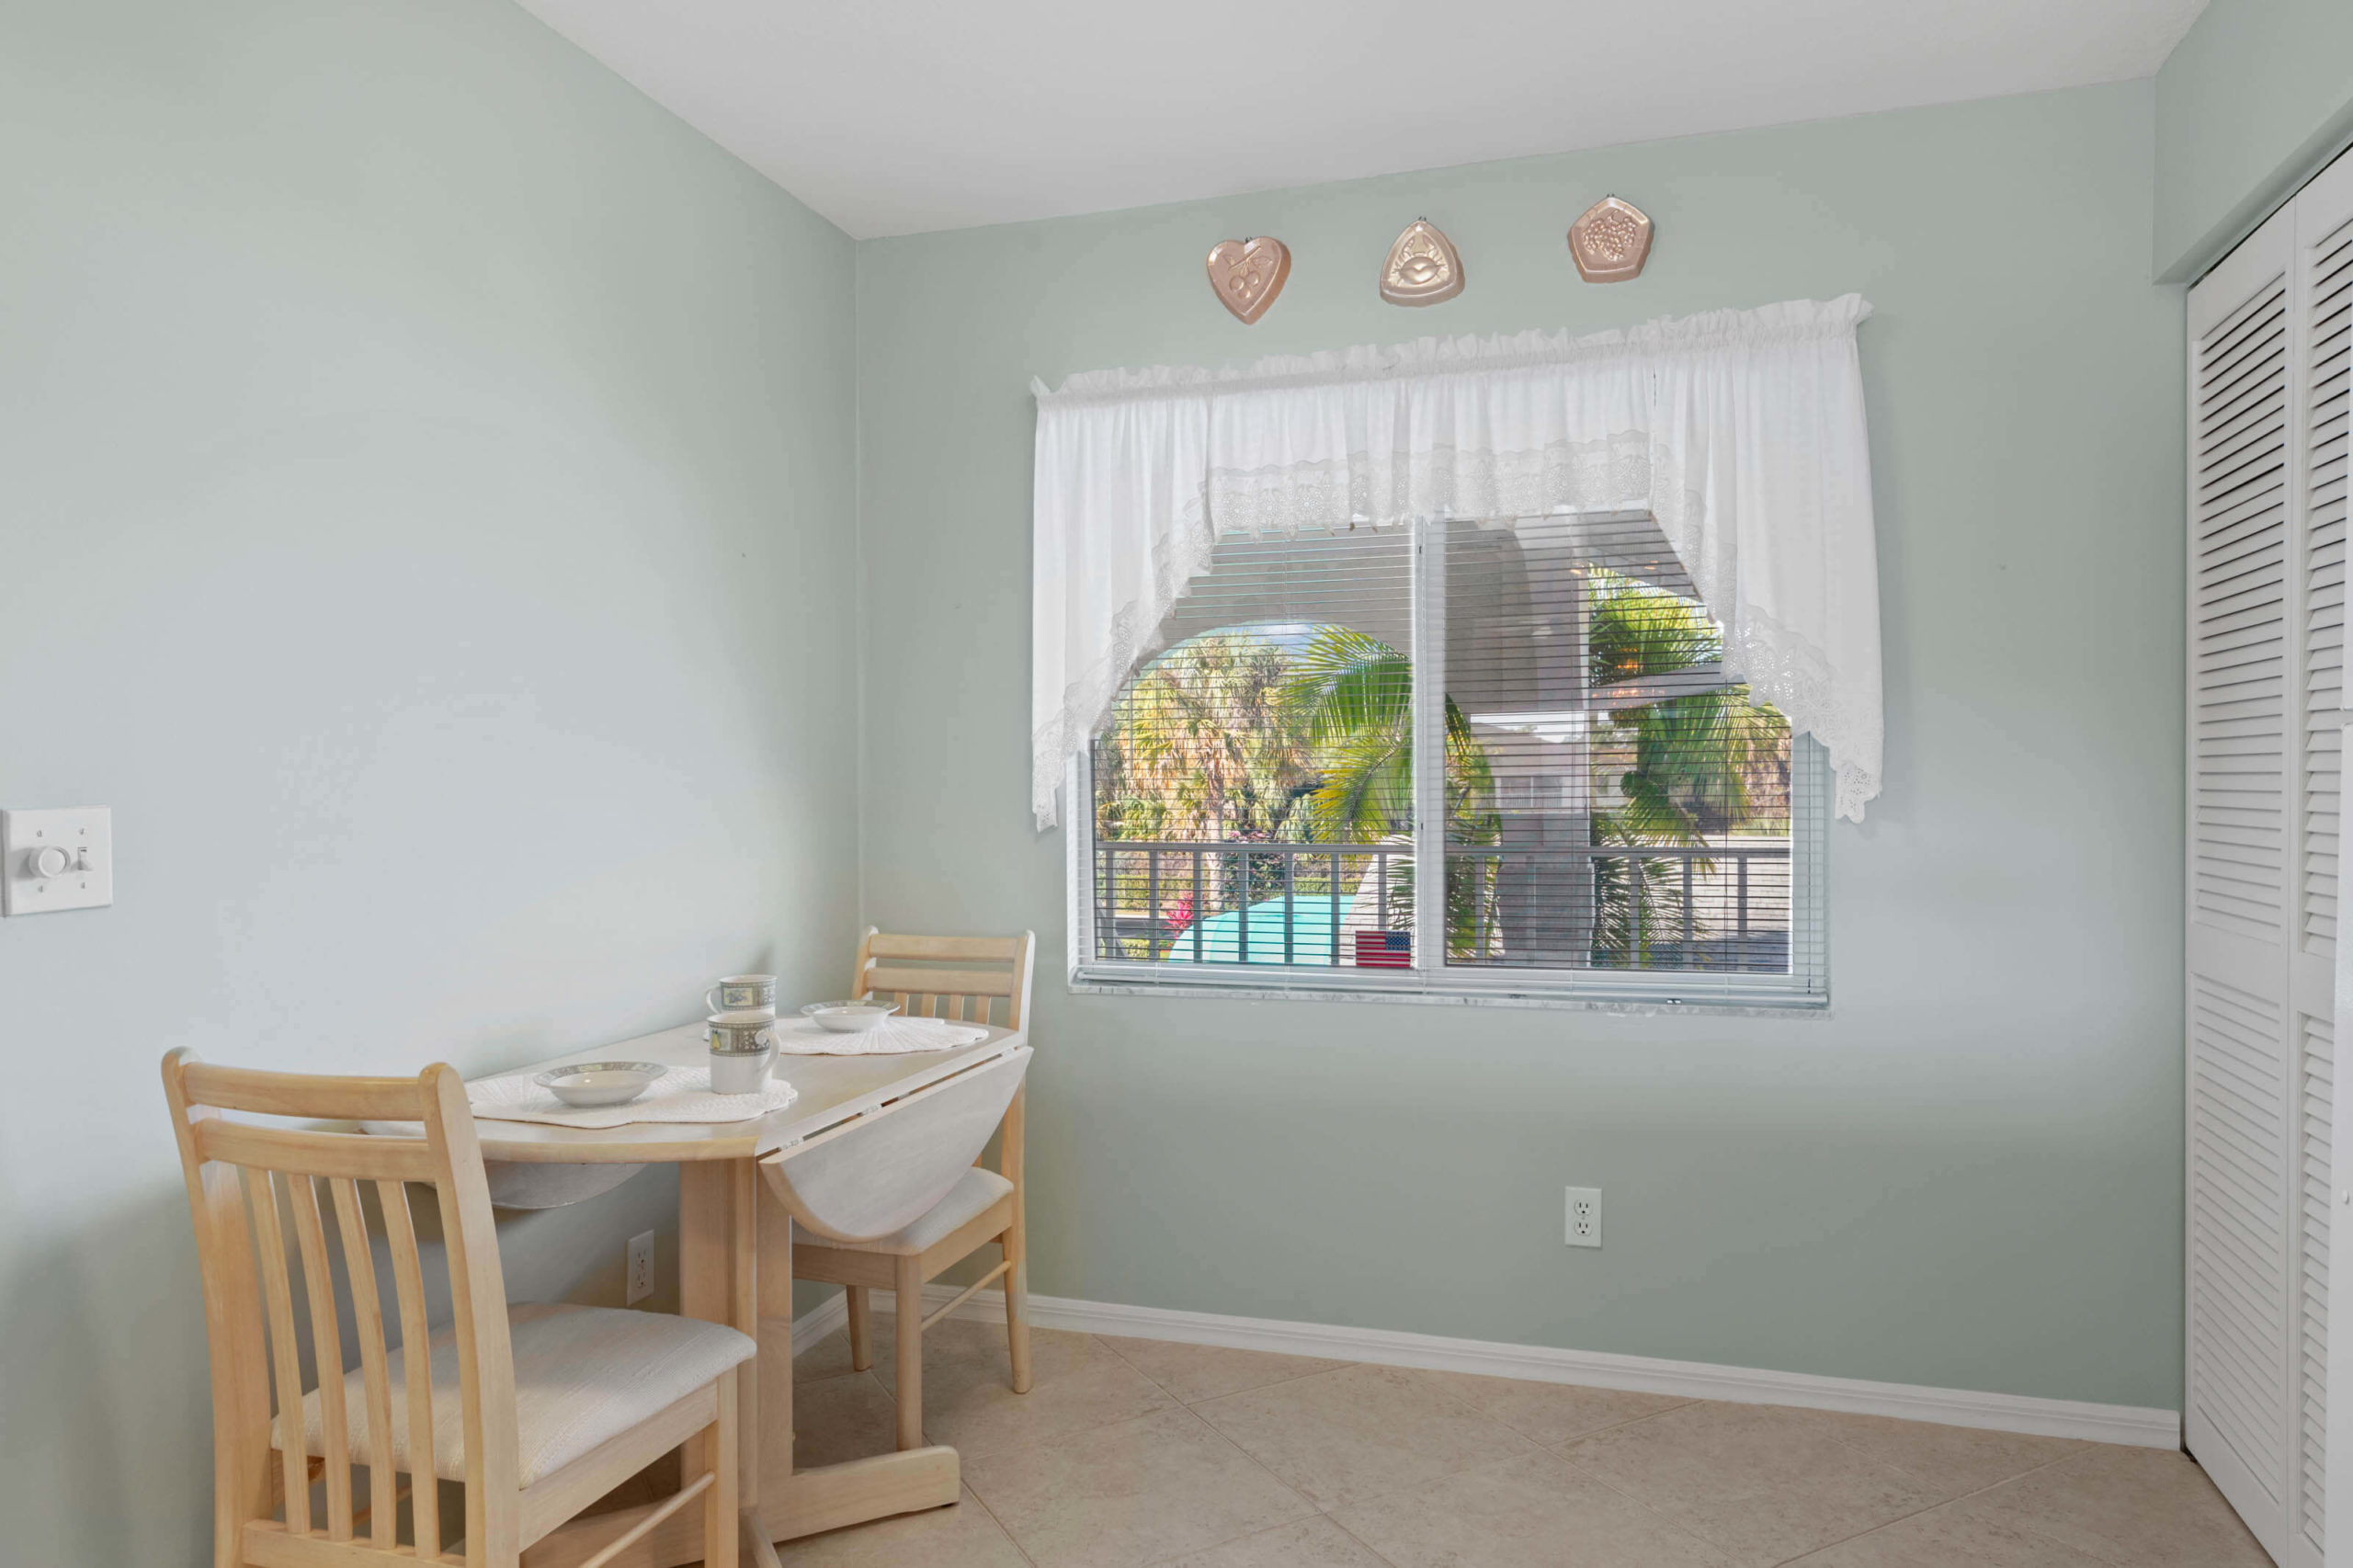 452 Belina Dr 1302 - Breakfast Nook